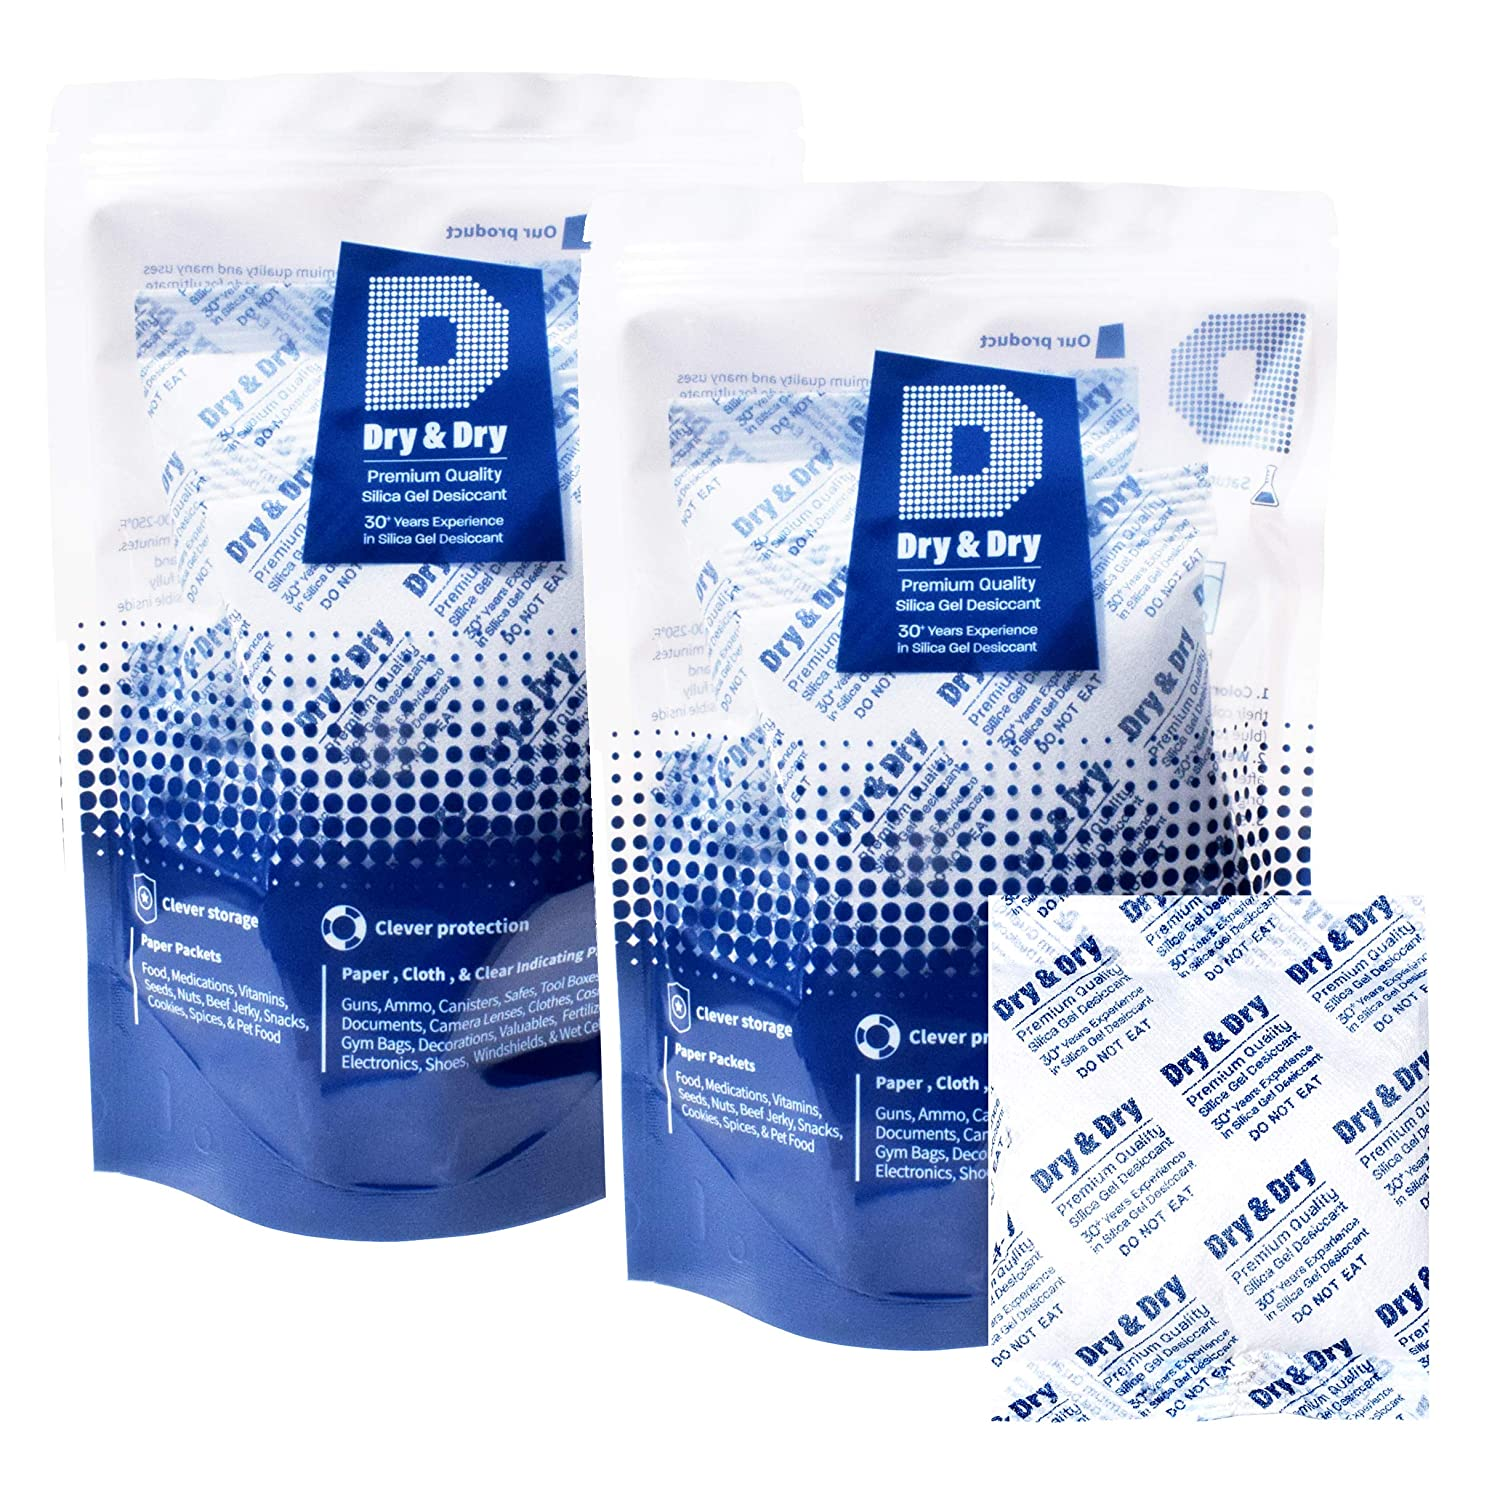 Dry & Dry 50 Gram [20 Packs] Silica Gel Premium Pure & Safe Silica Gel Packs Desiccant Dehumidifiers - Rechargeable Fabric Silica Packets for Moisture Absorber Silica Gel Packets